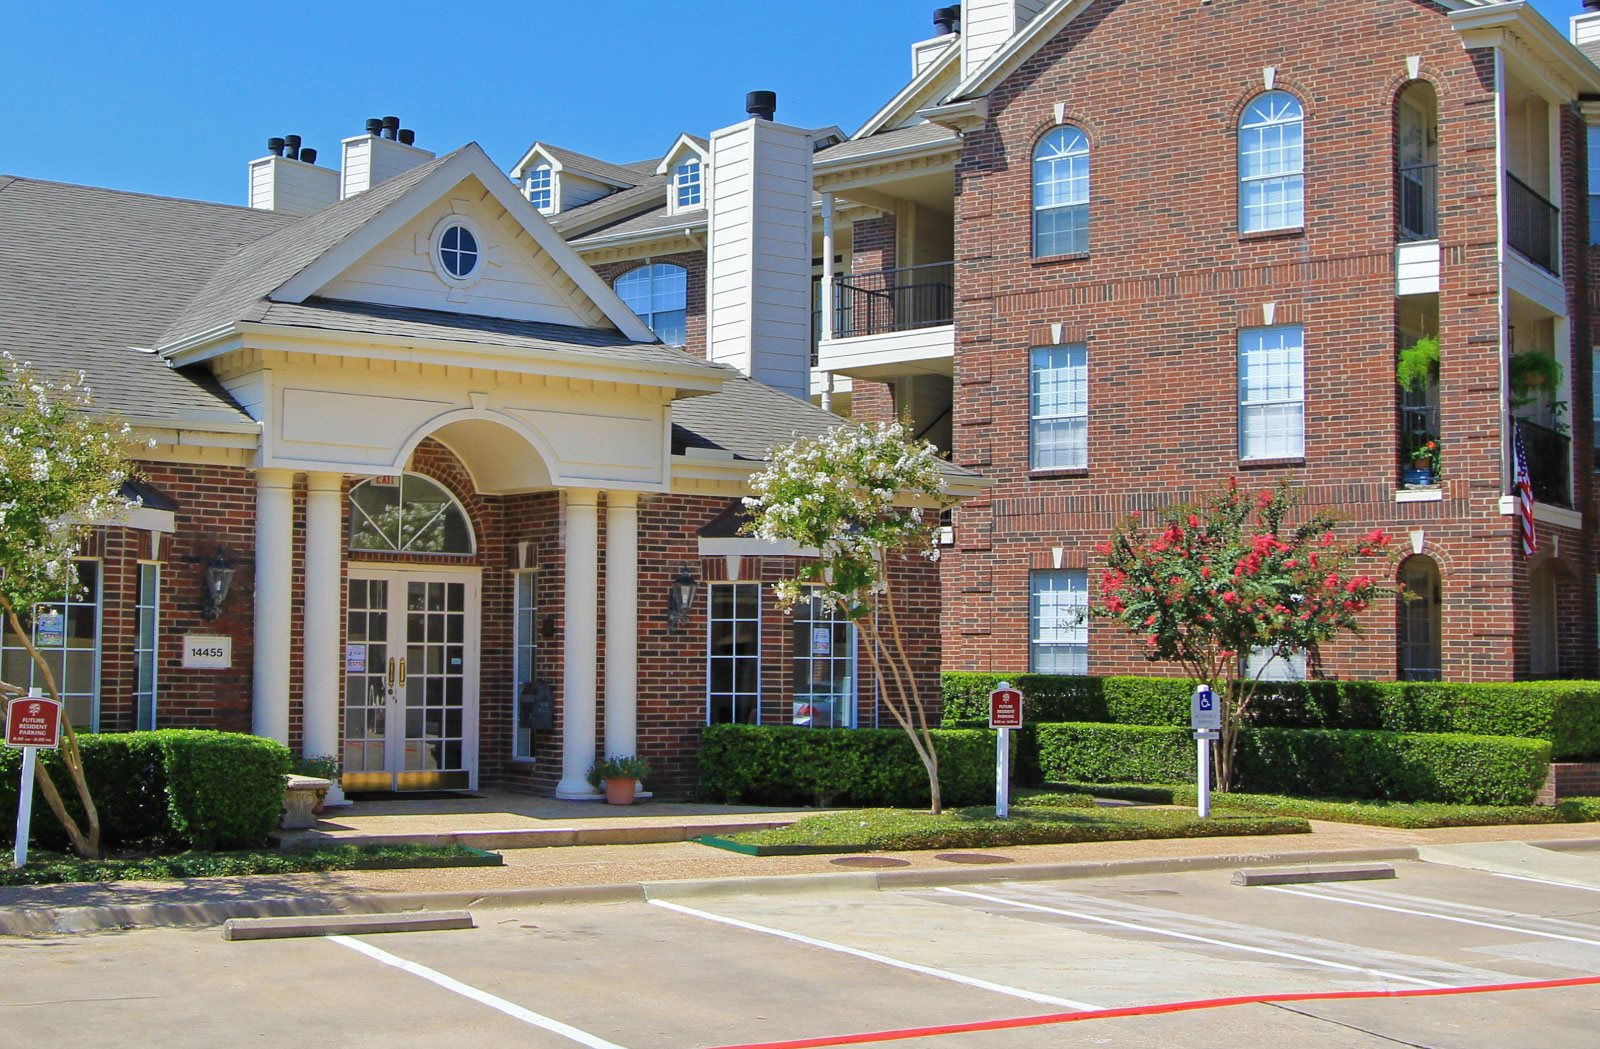 Apartments With Attached Garages In Dallas Tx | Dandk ...